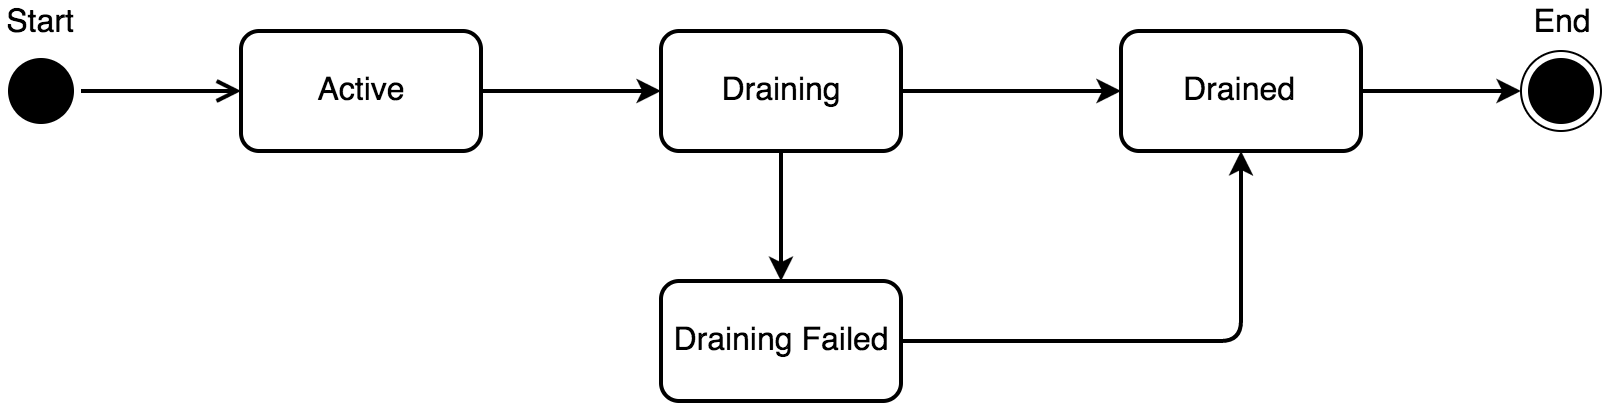 Lifecycle States